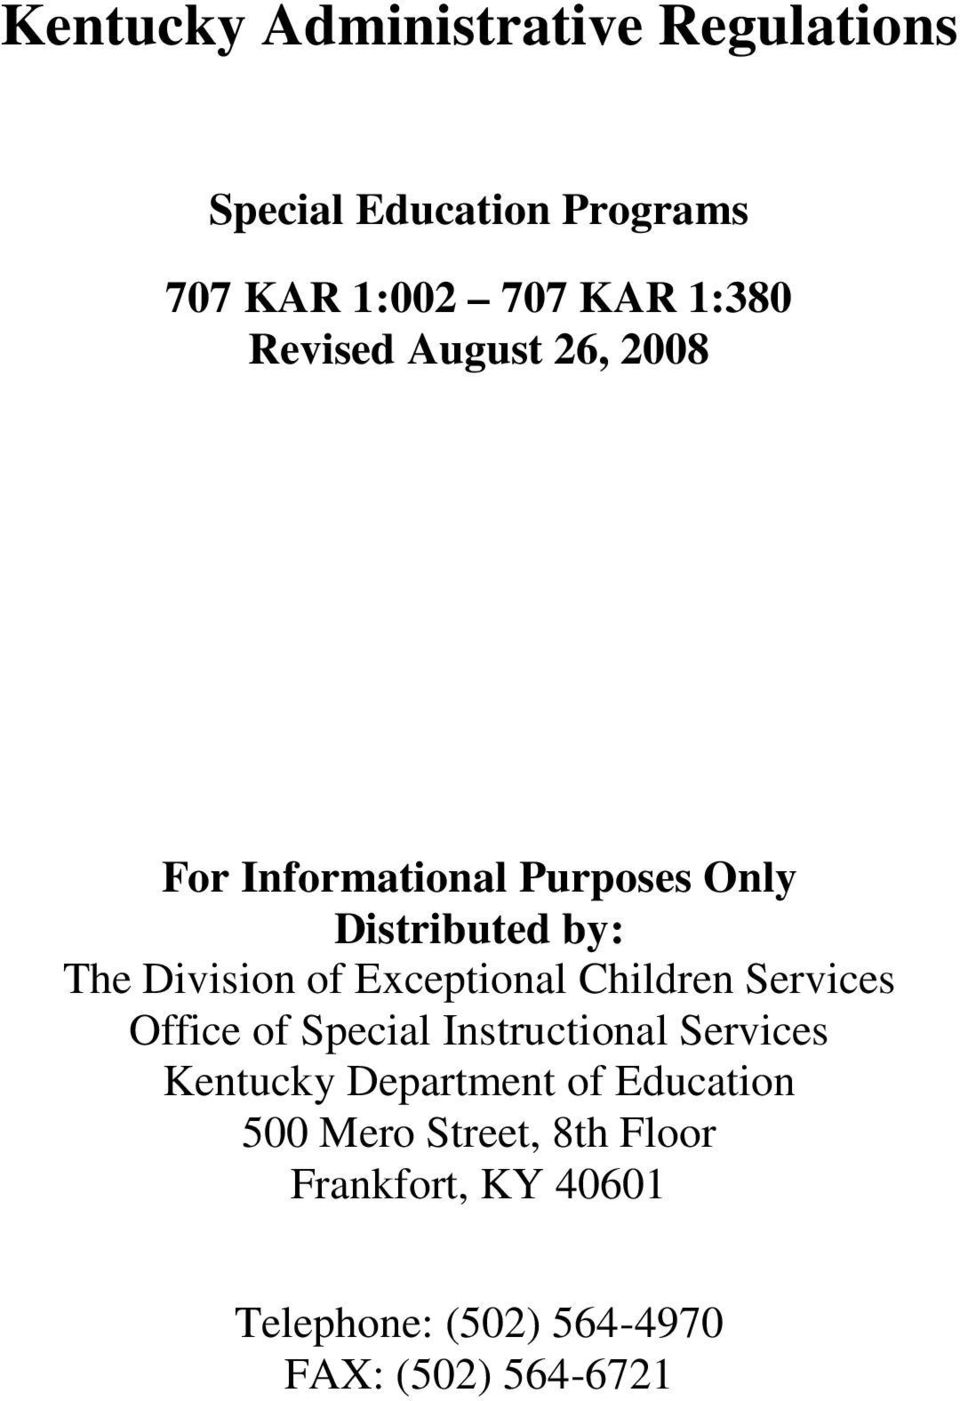 Exceptional Children Services Office of Special Instructional Services Kentucky Department of